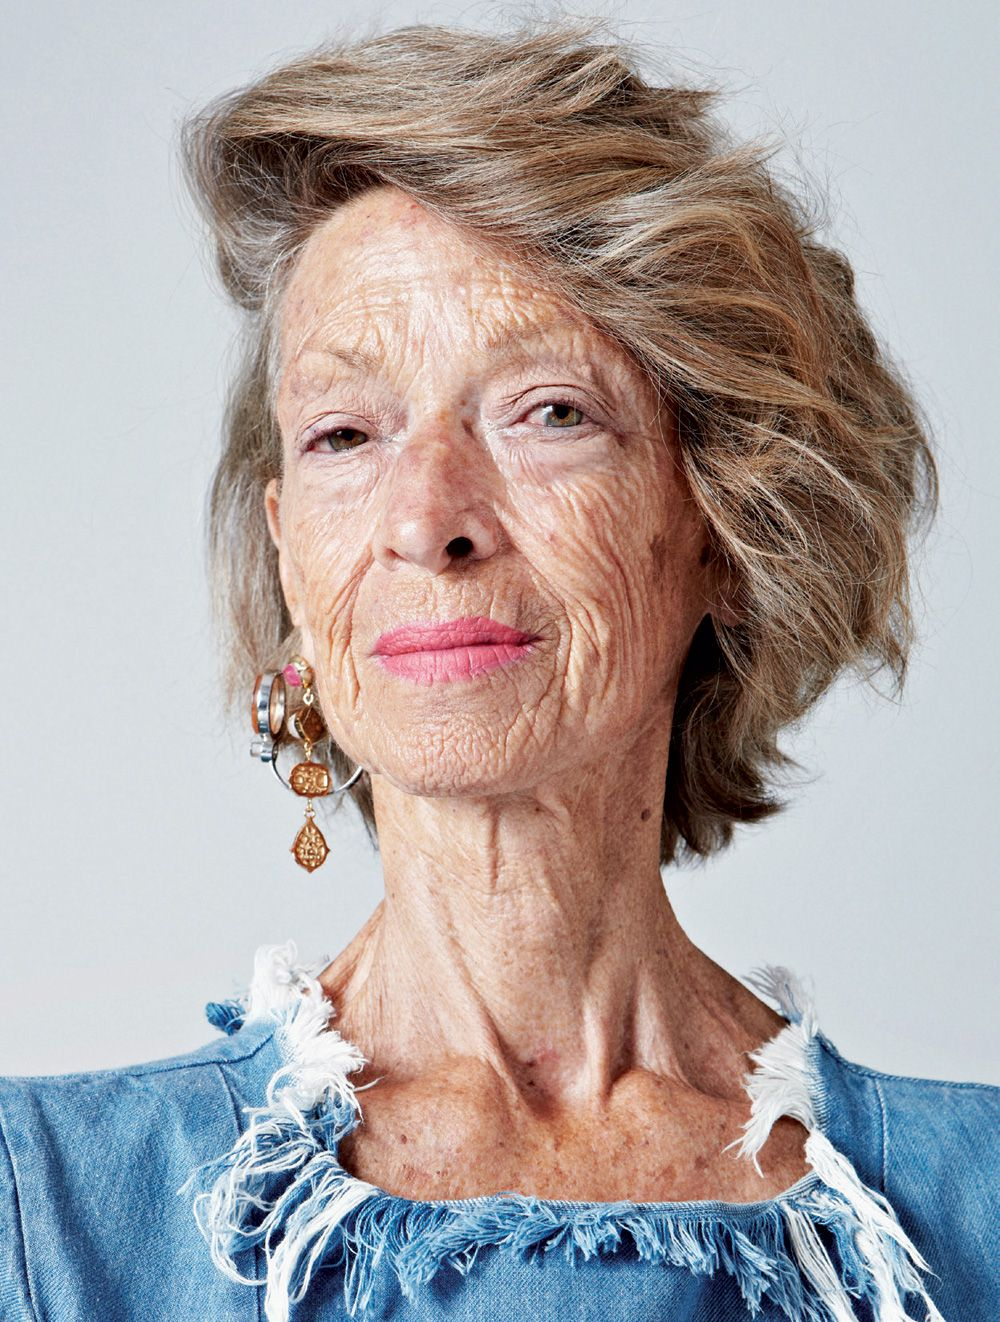 Ageless beauty: 72-year-old Loulou Van Damme - That's Not My Age